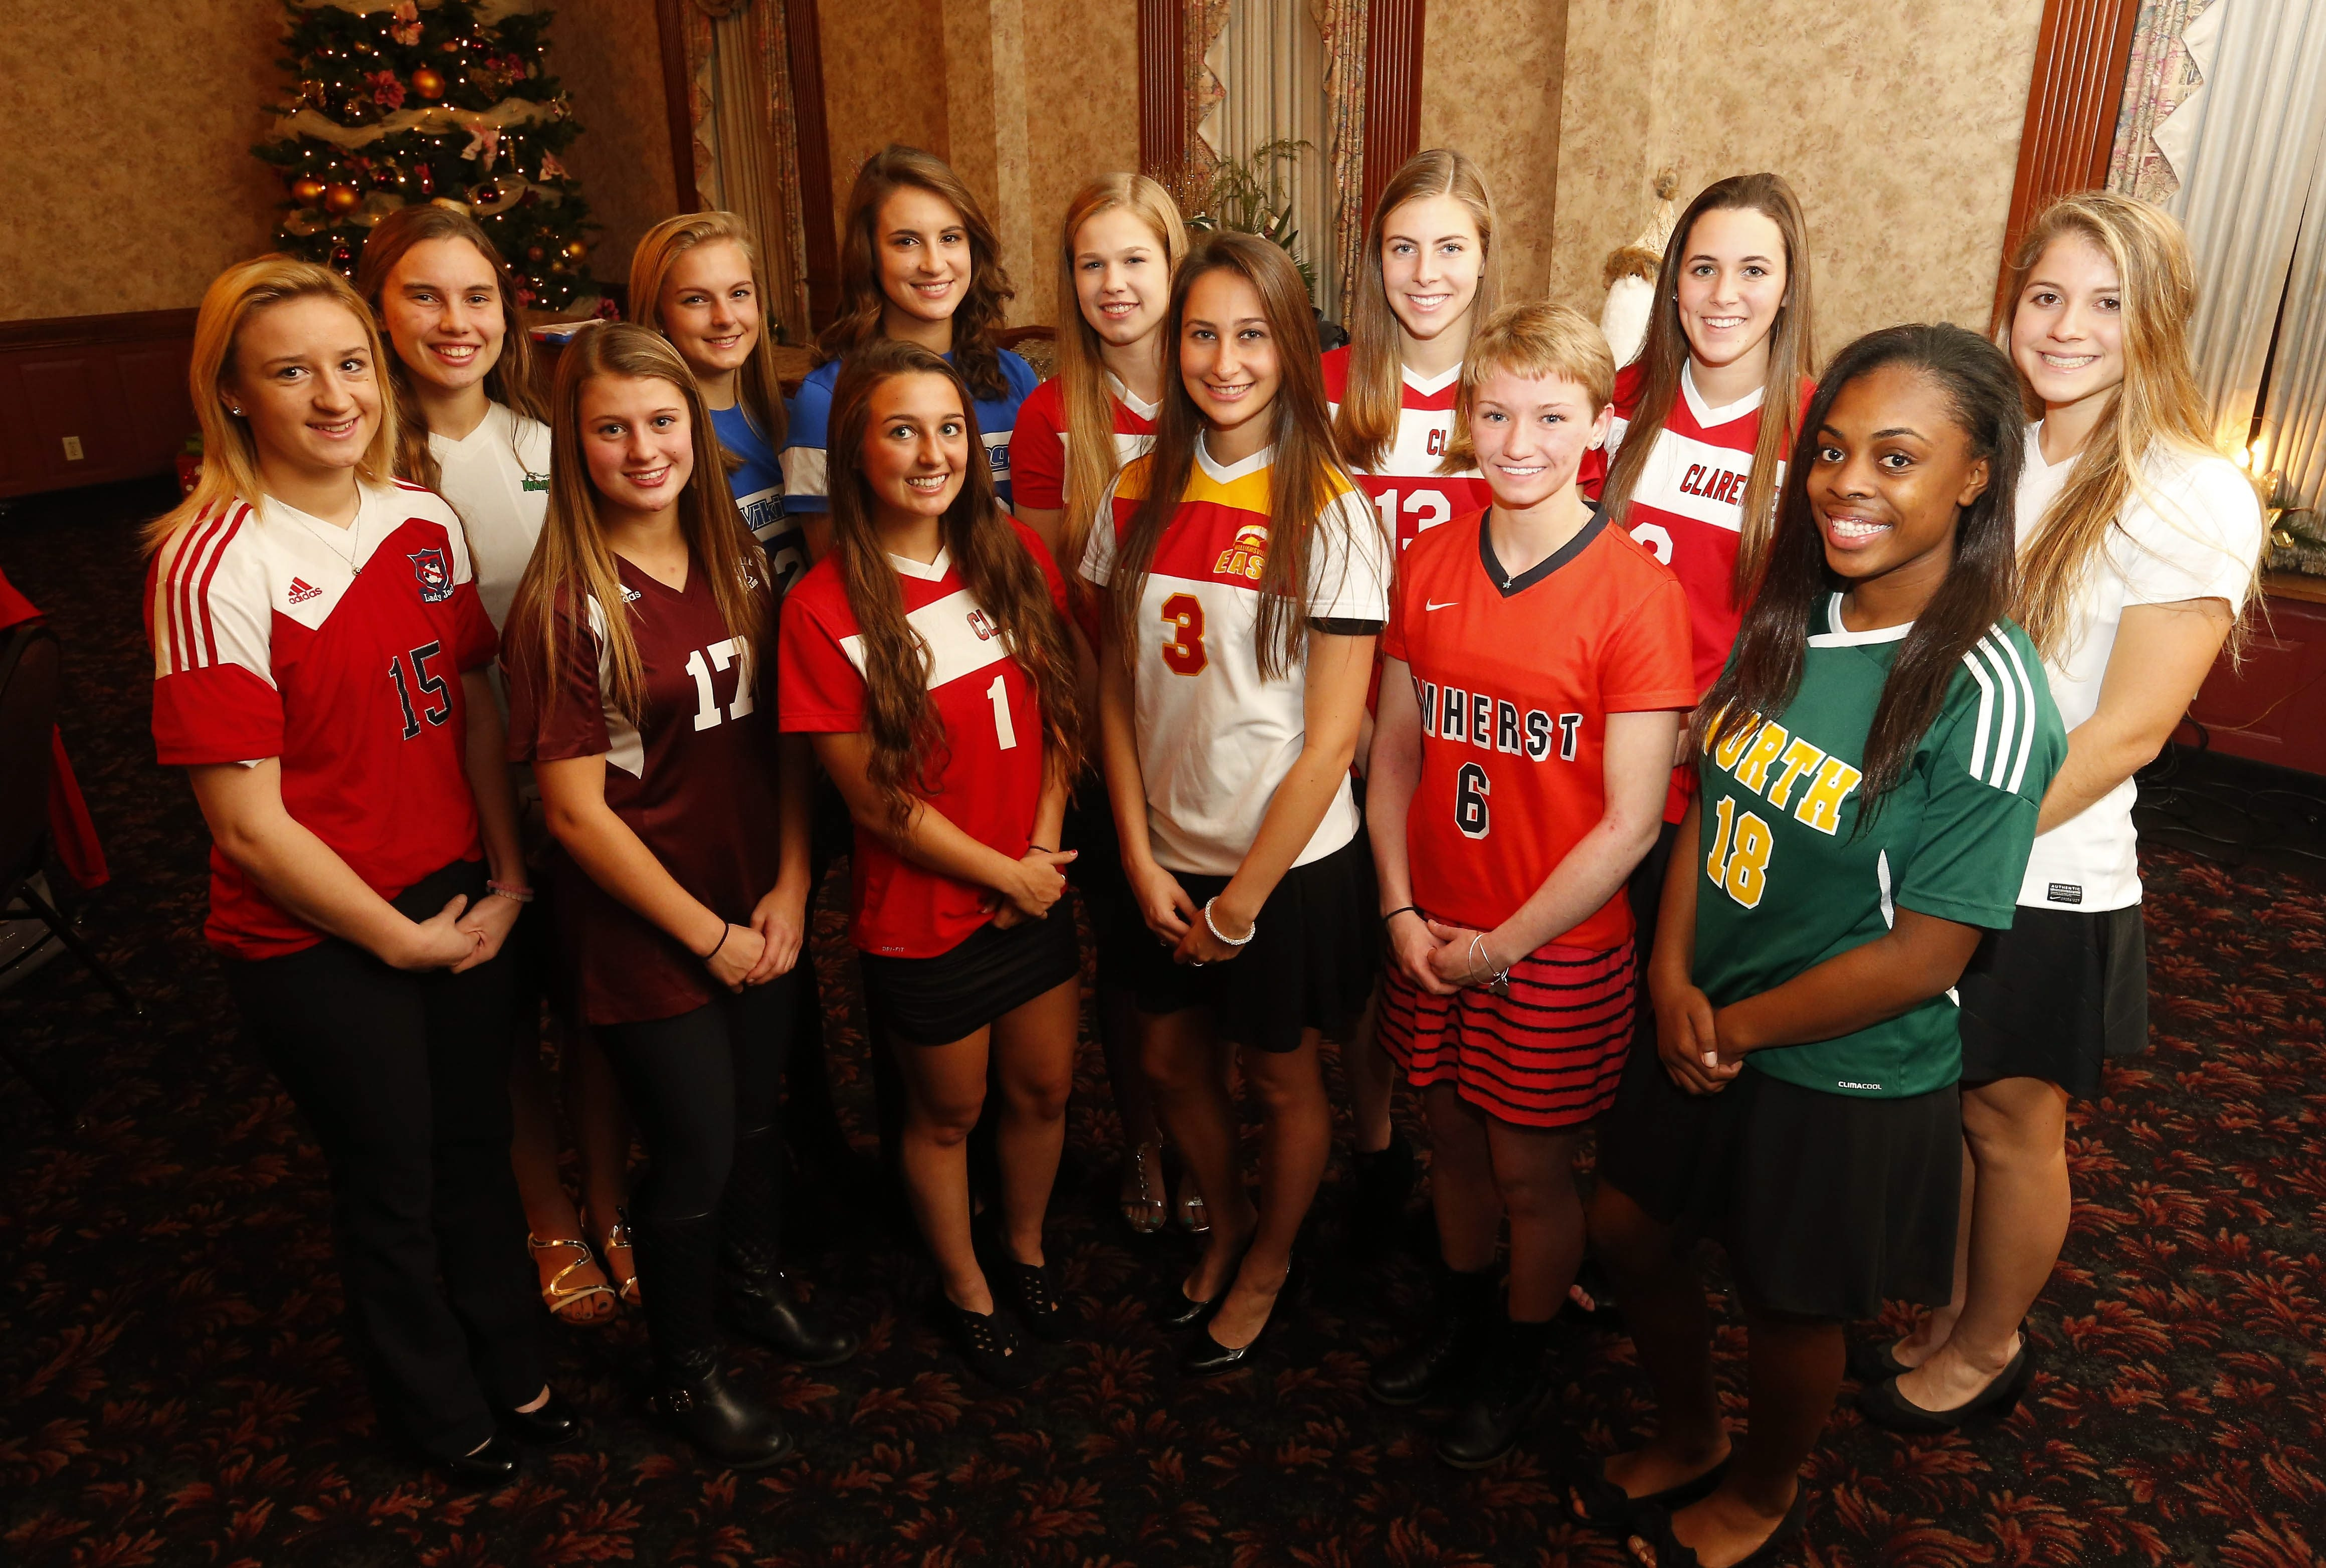 The All-WNY Girls Soccer first team. Front row, left to right: Allie Smyth (North Tonawanda), Morgan Zlockie (Ellicottville), Riley Bowers (Clarence), Marissa Birzon (Williamsville East), Amanda Roberts (Amherst), Maya Palmer (Williamsville North). Back row: Eileen Rath (Nardin), Madisyn Pezzino (Grand Island), Marcy Barberic (Grand Island), Hannah Spitzer (Clarence), Sydney Cerza (Clarence), Molly Barden (Clarence), Emma Gervase (Nardin).